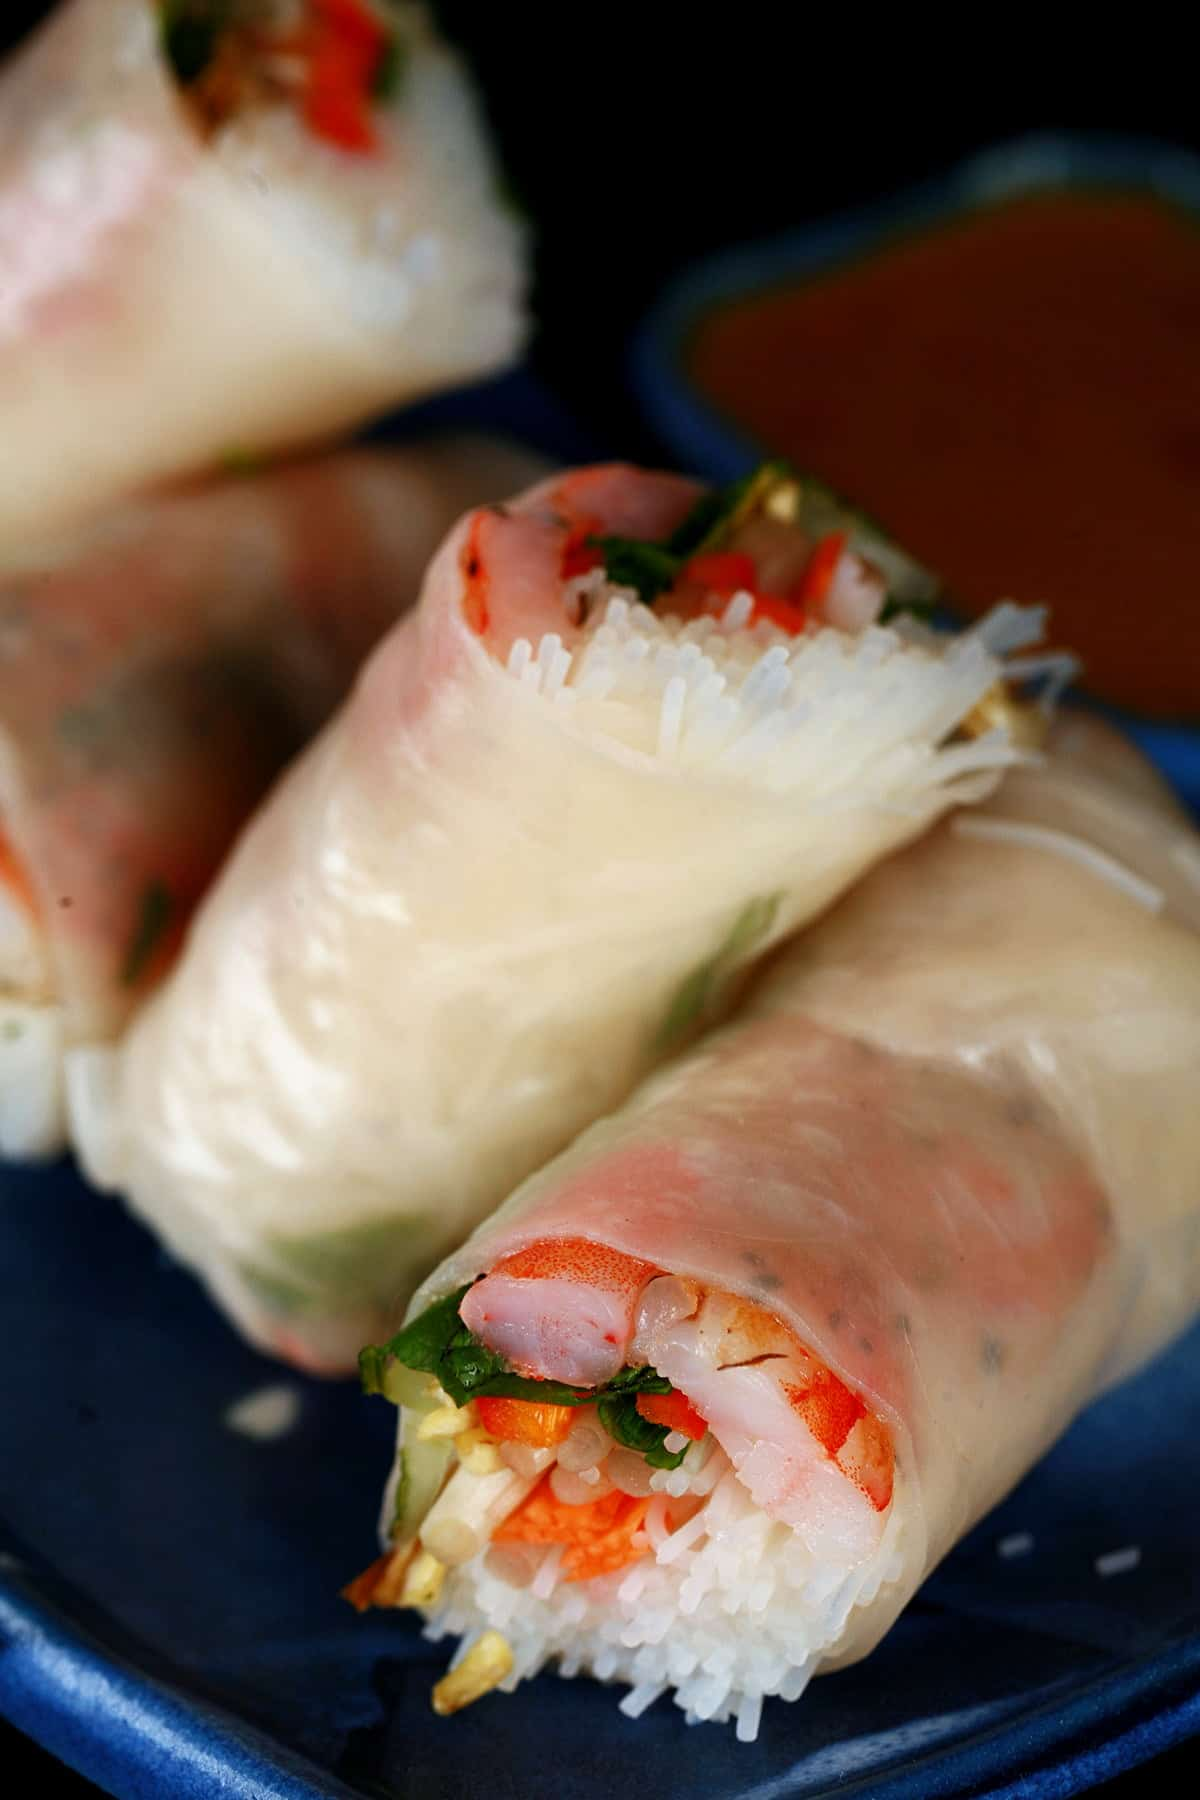 4 pieces of shrimp spring rolls are arranged on a blue plate.